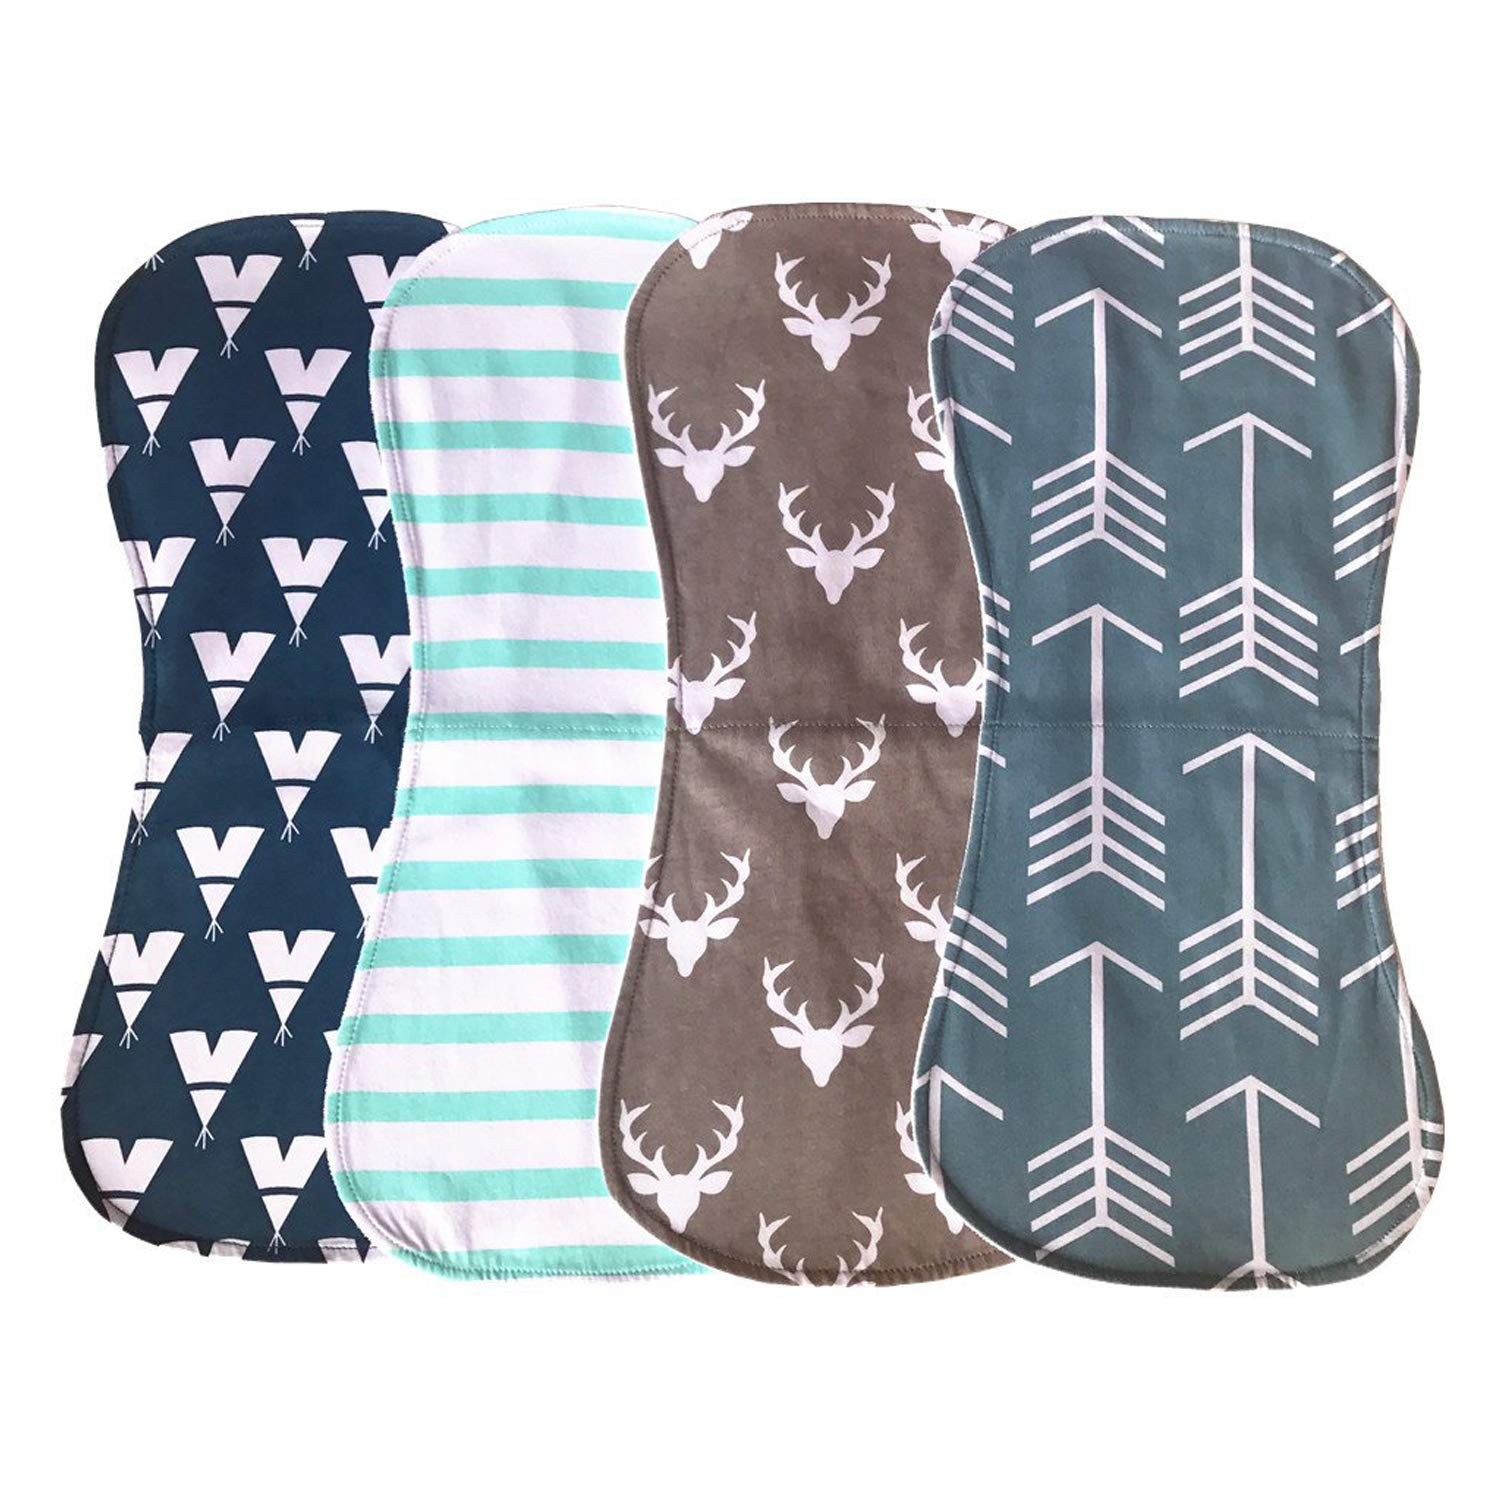 Baby Burp Pack of 4 by yizhuo,Premium Quality Unisex Boy or Girls Soft and Absorbent (Boy Baby) by Yi Zhou